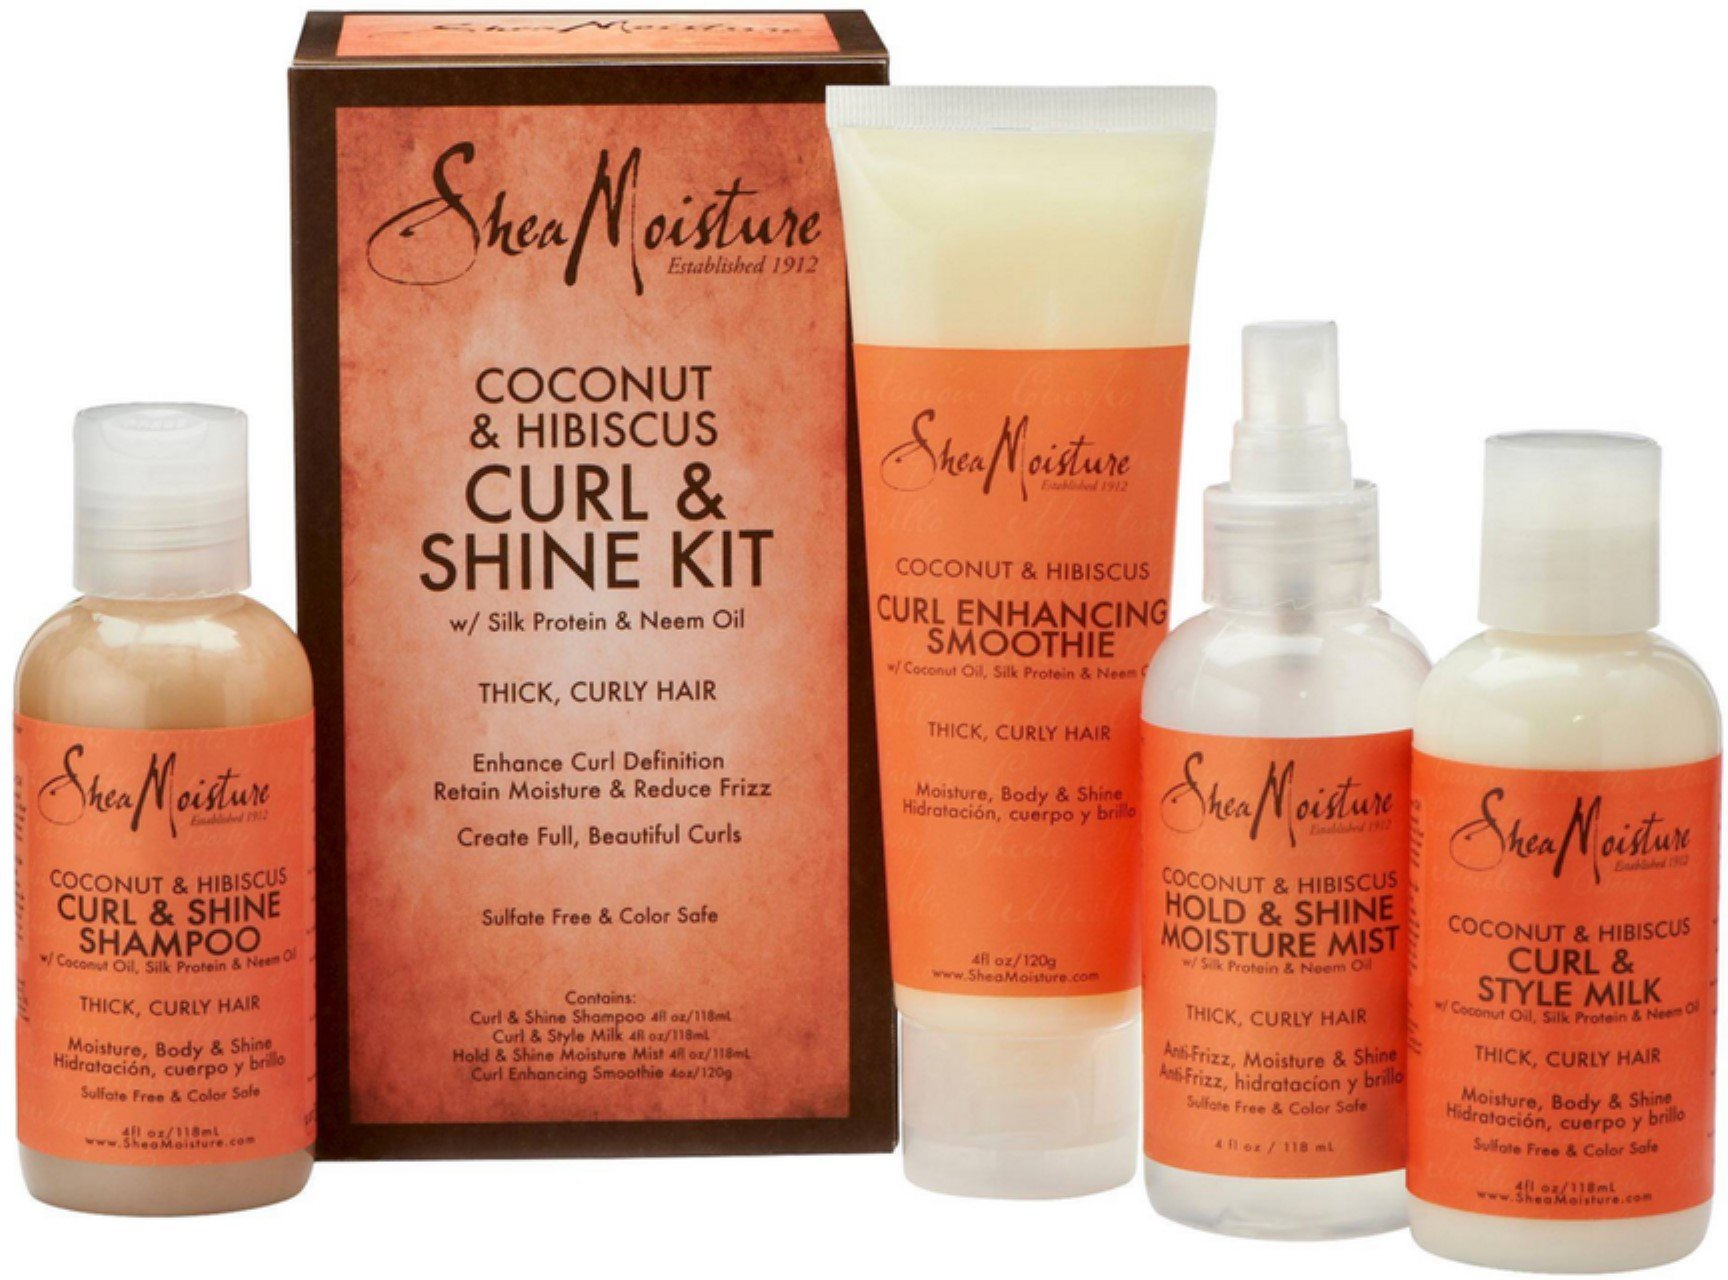 SheaMoisture 1 count Coconut & Hibiscus Curl & Shine Kit by Shea Moisture